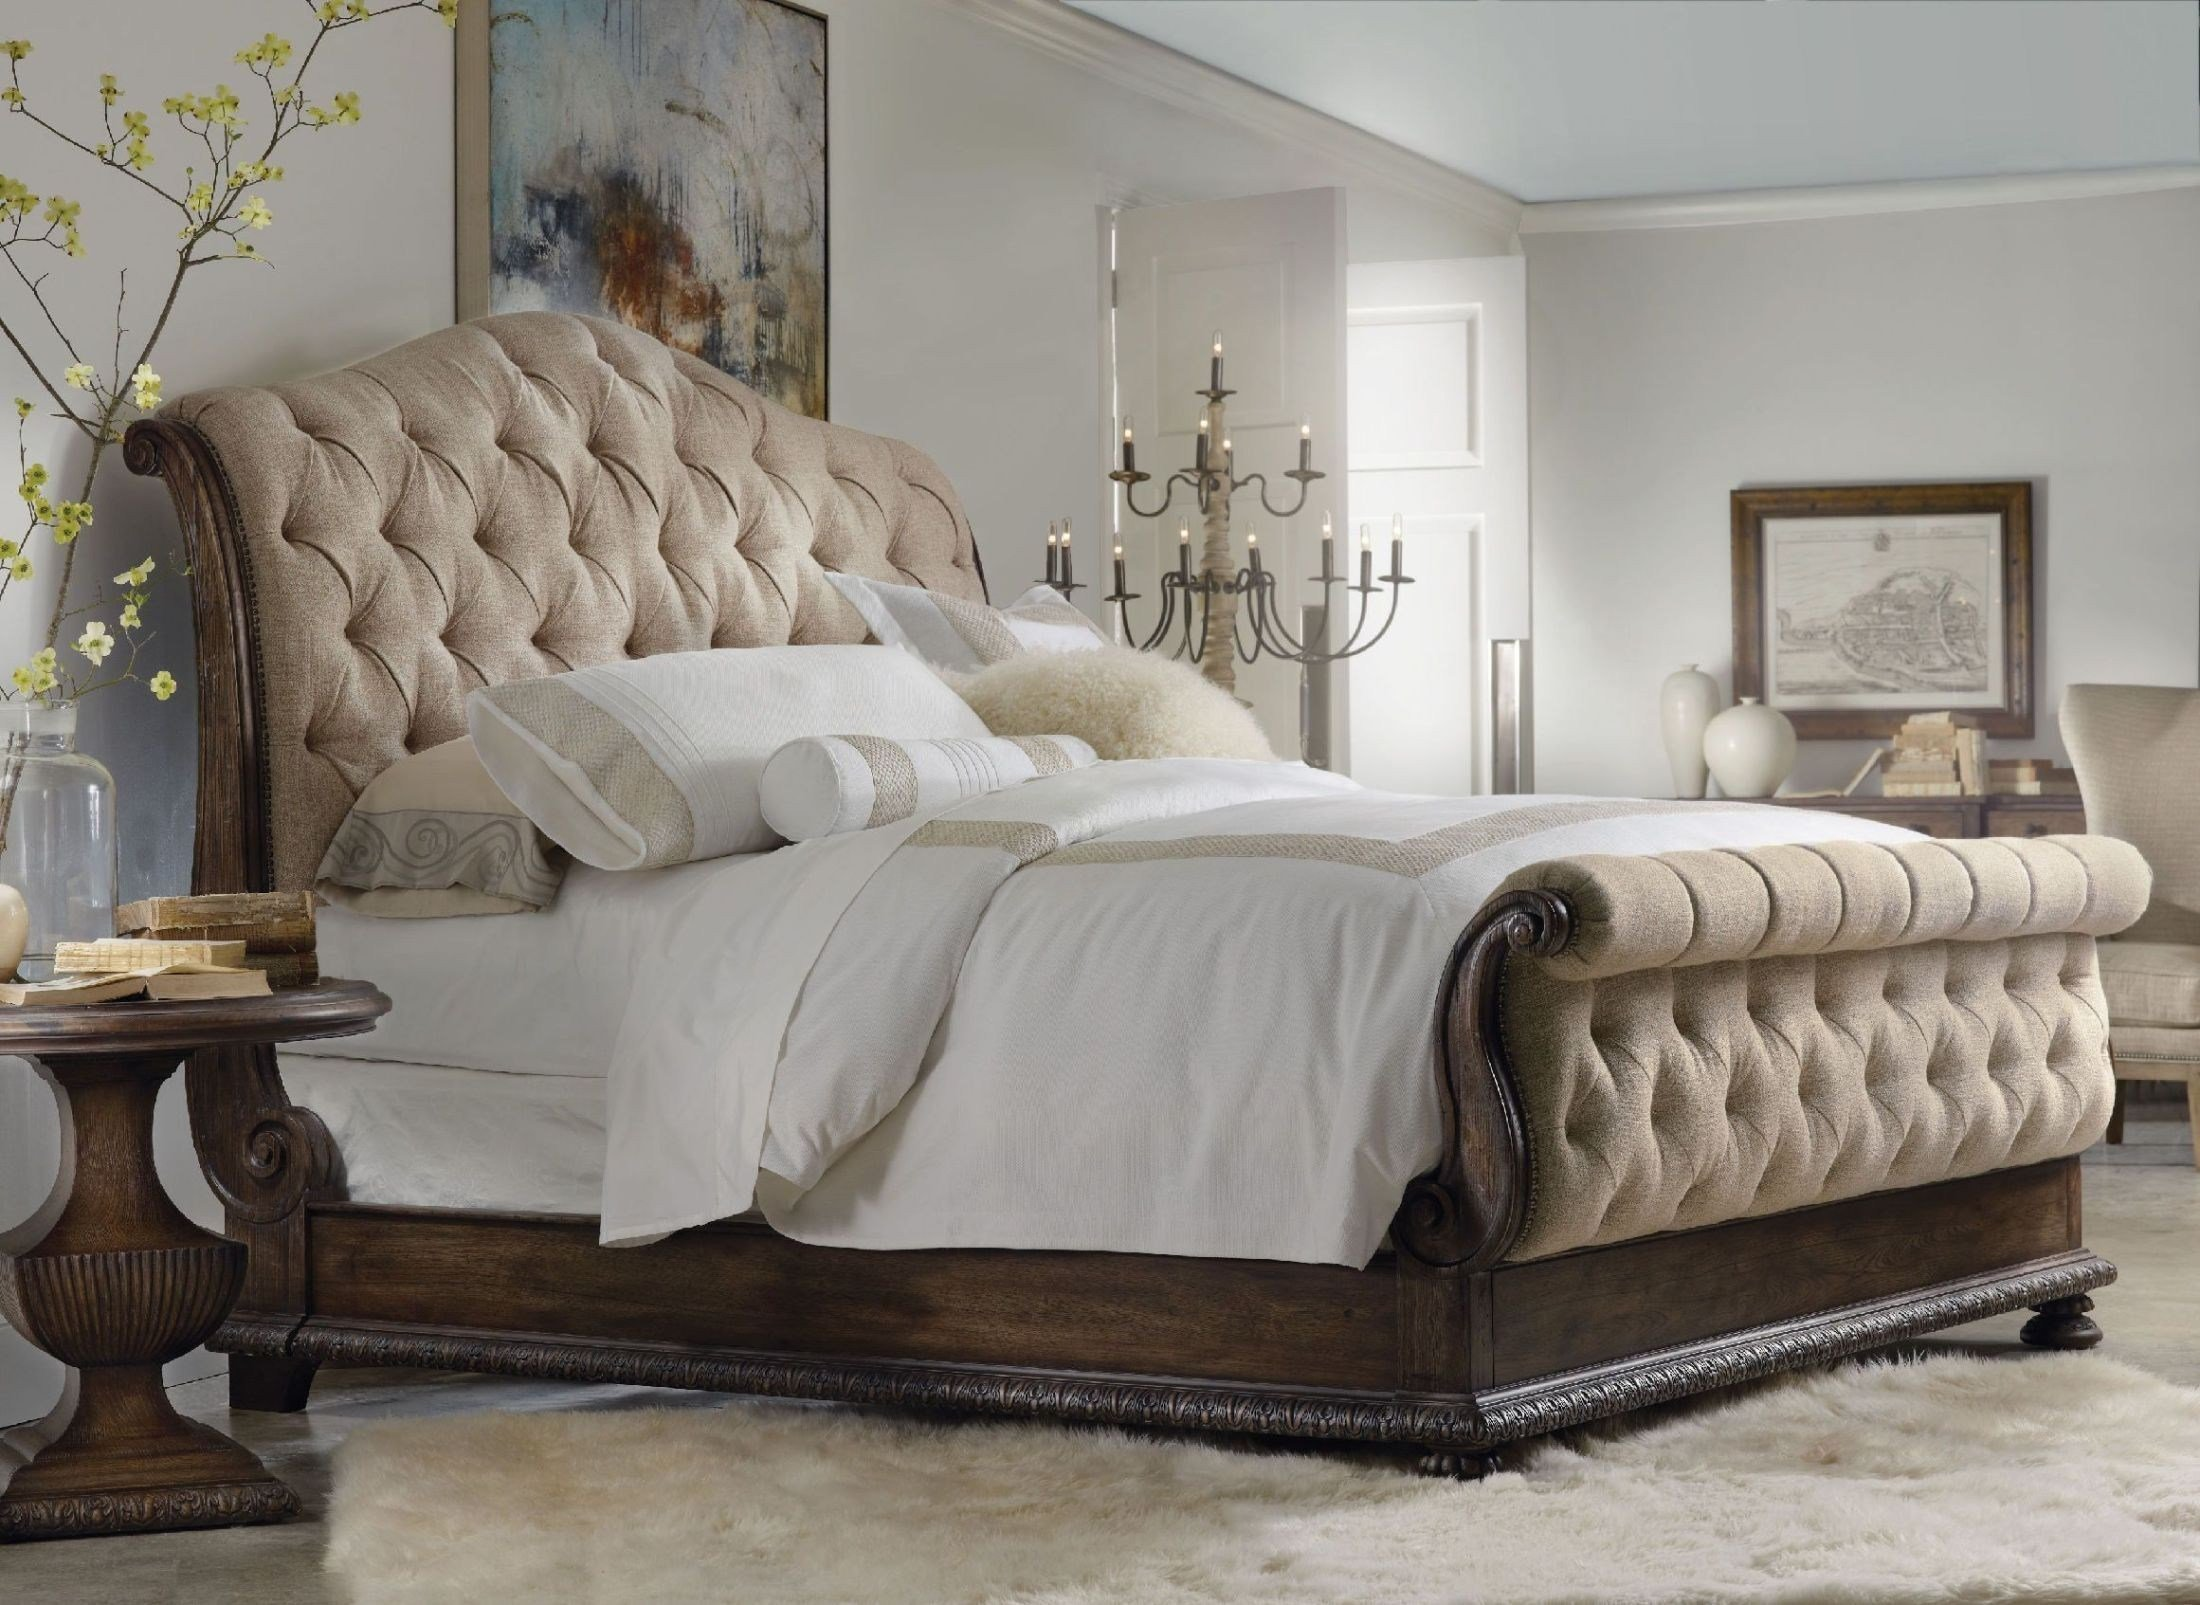 Best Rhapsody Beige Tufted Sleigh Bedroom Set From H**K*R With Pictures